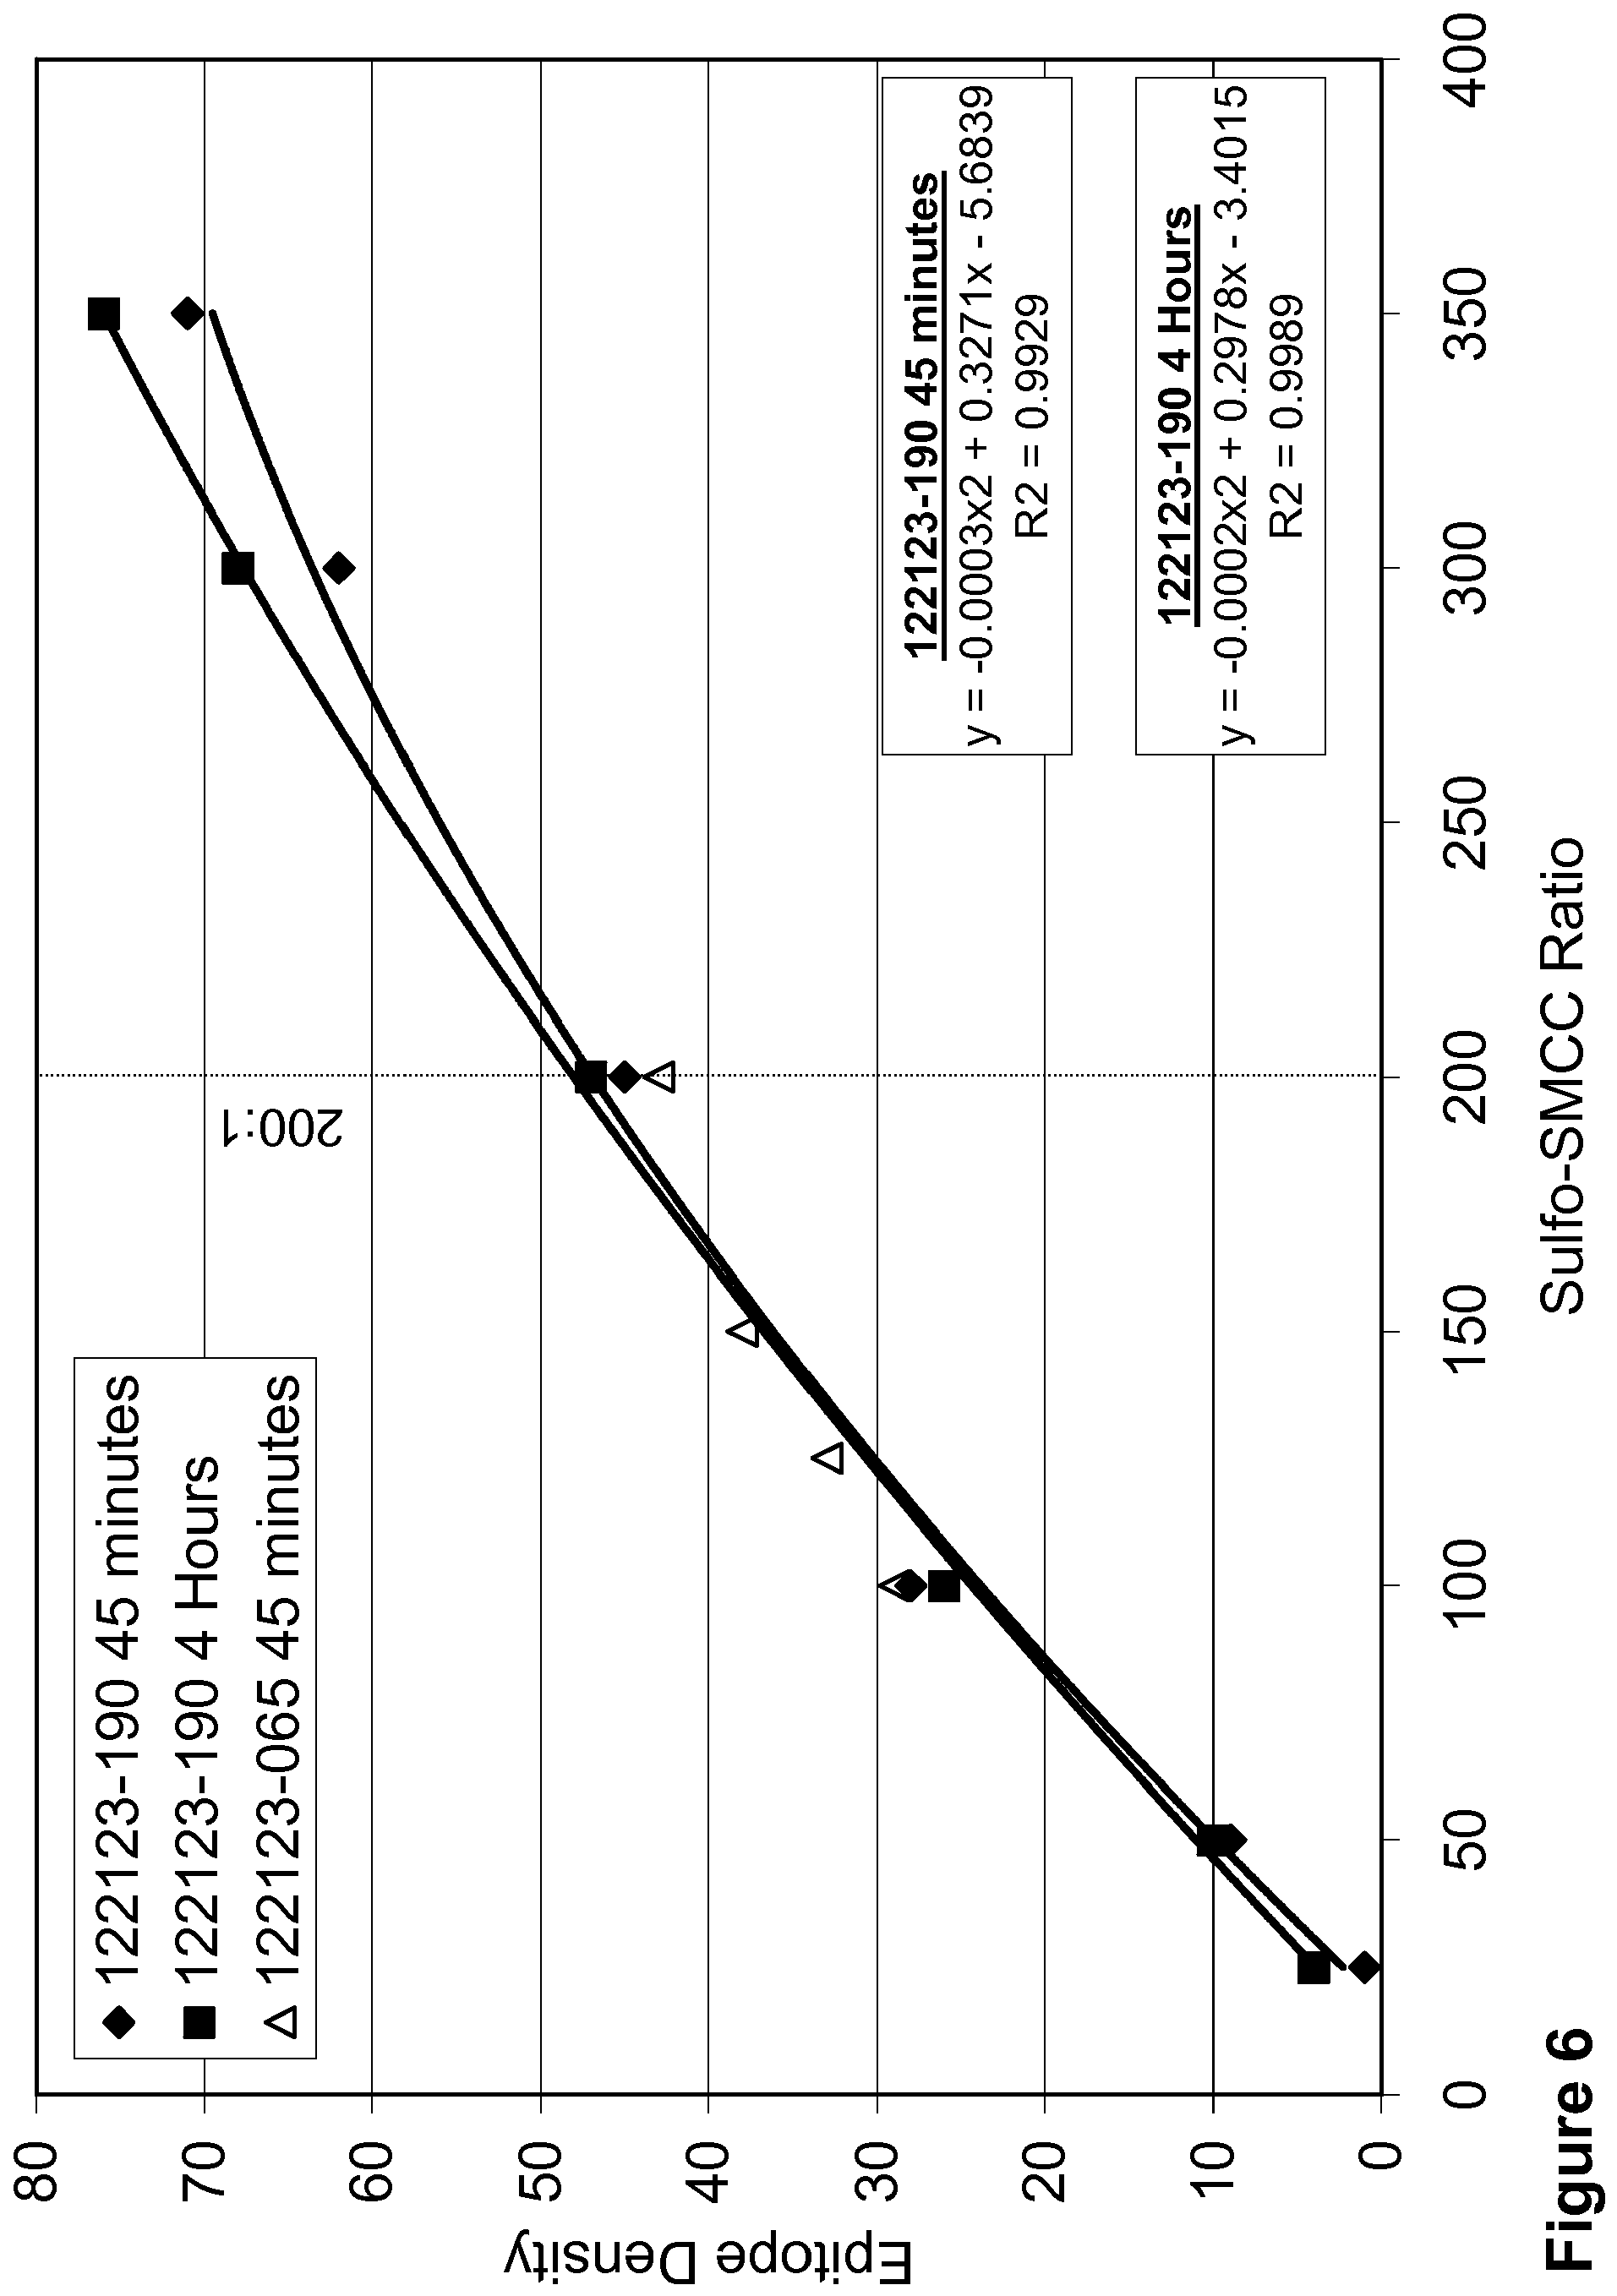 VACCINE COMPOSITIONS - Patent 2515934